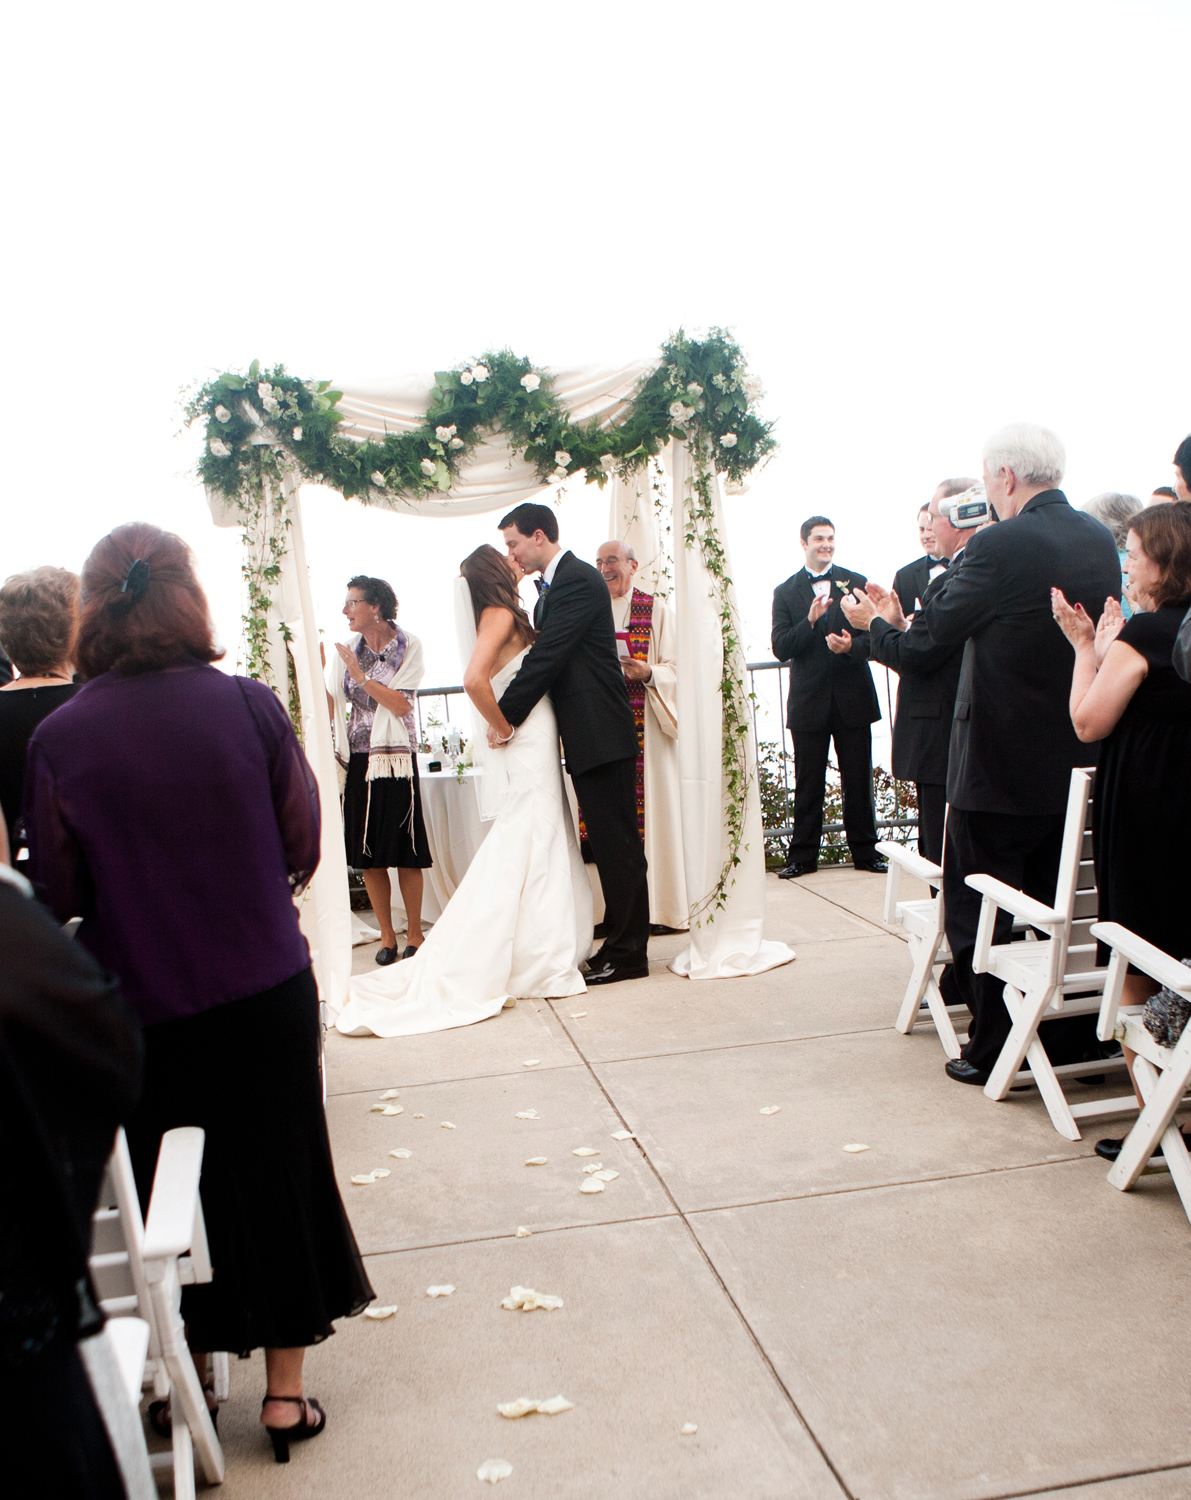 Outdoor Wedding At The Cliff House Resort Spa In Maine